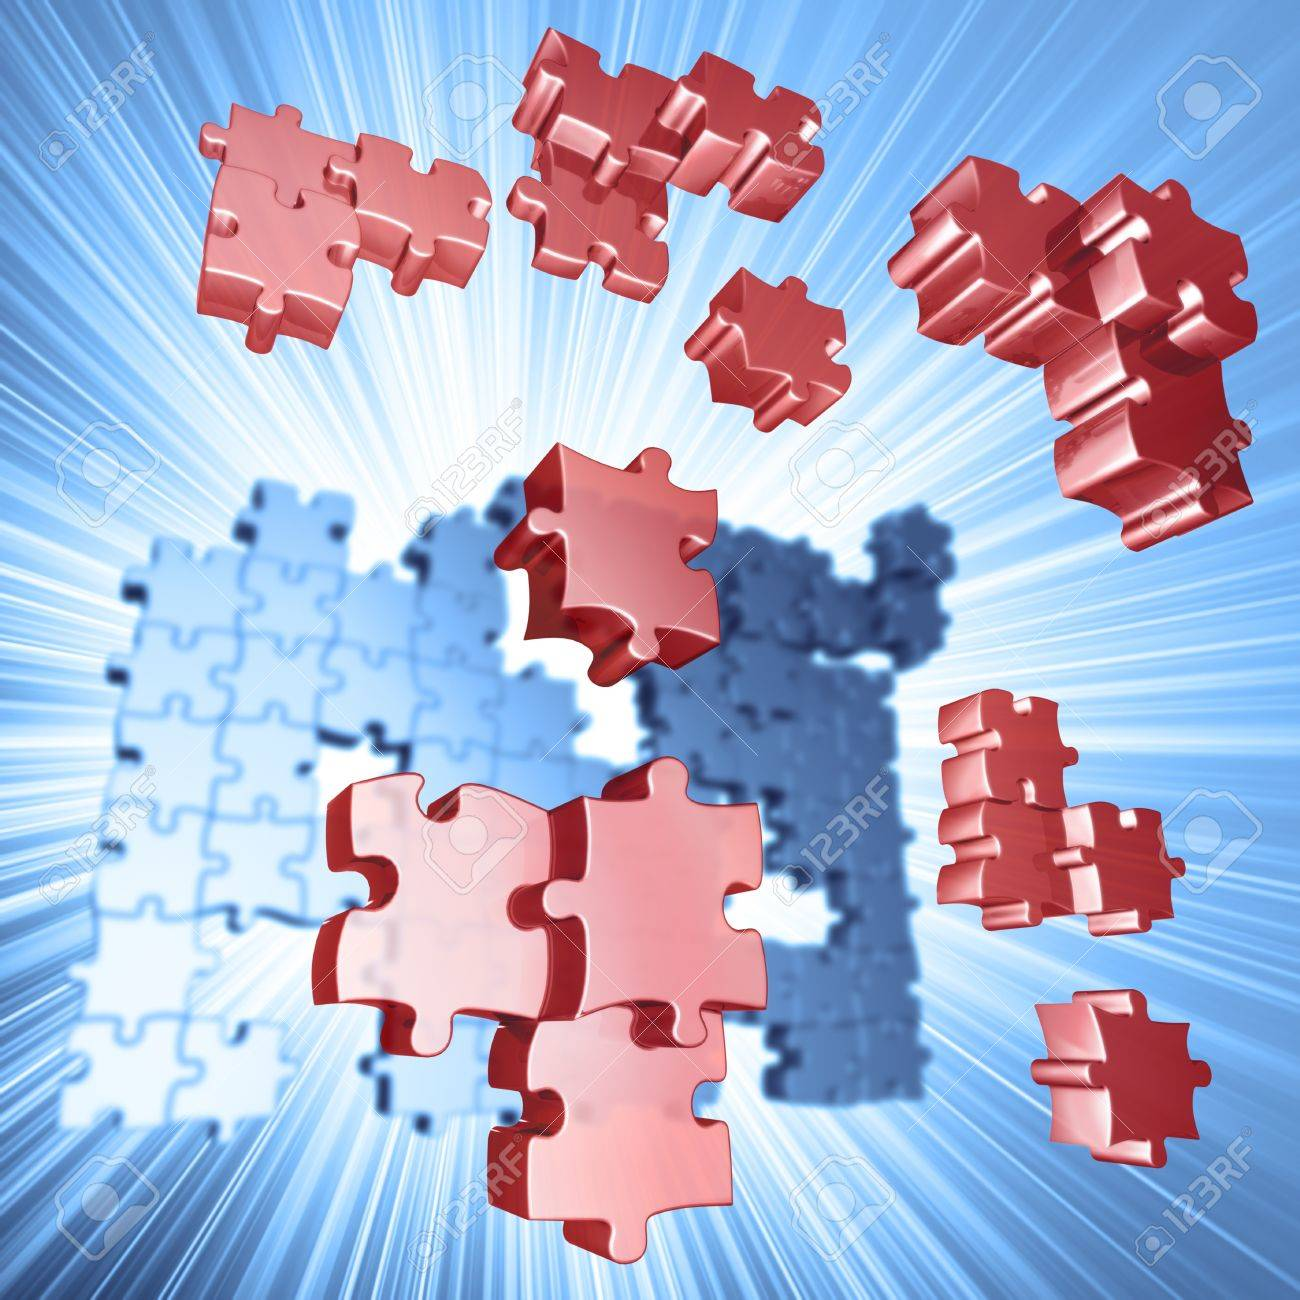 Explosion of puzzle pieces. Concept ideas and solutions. Stock Photo - 13404691